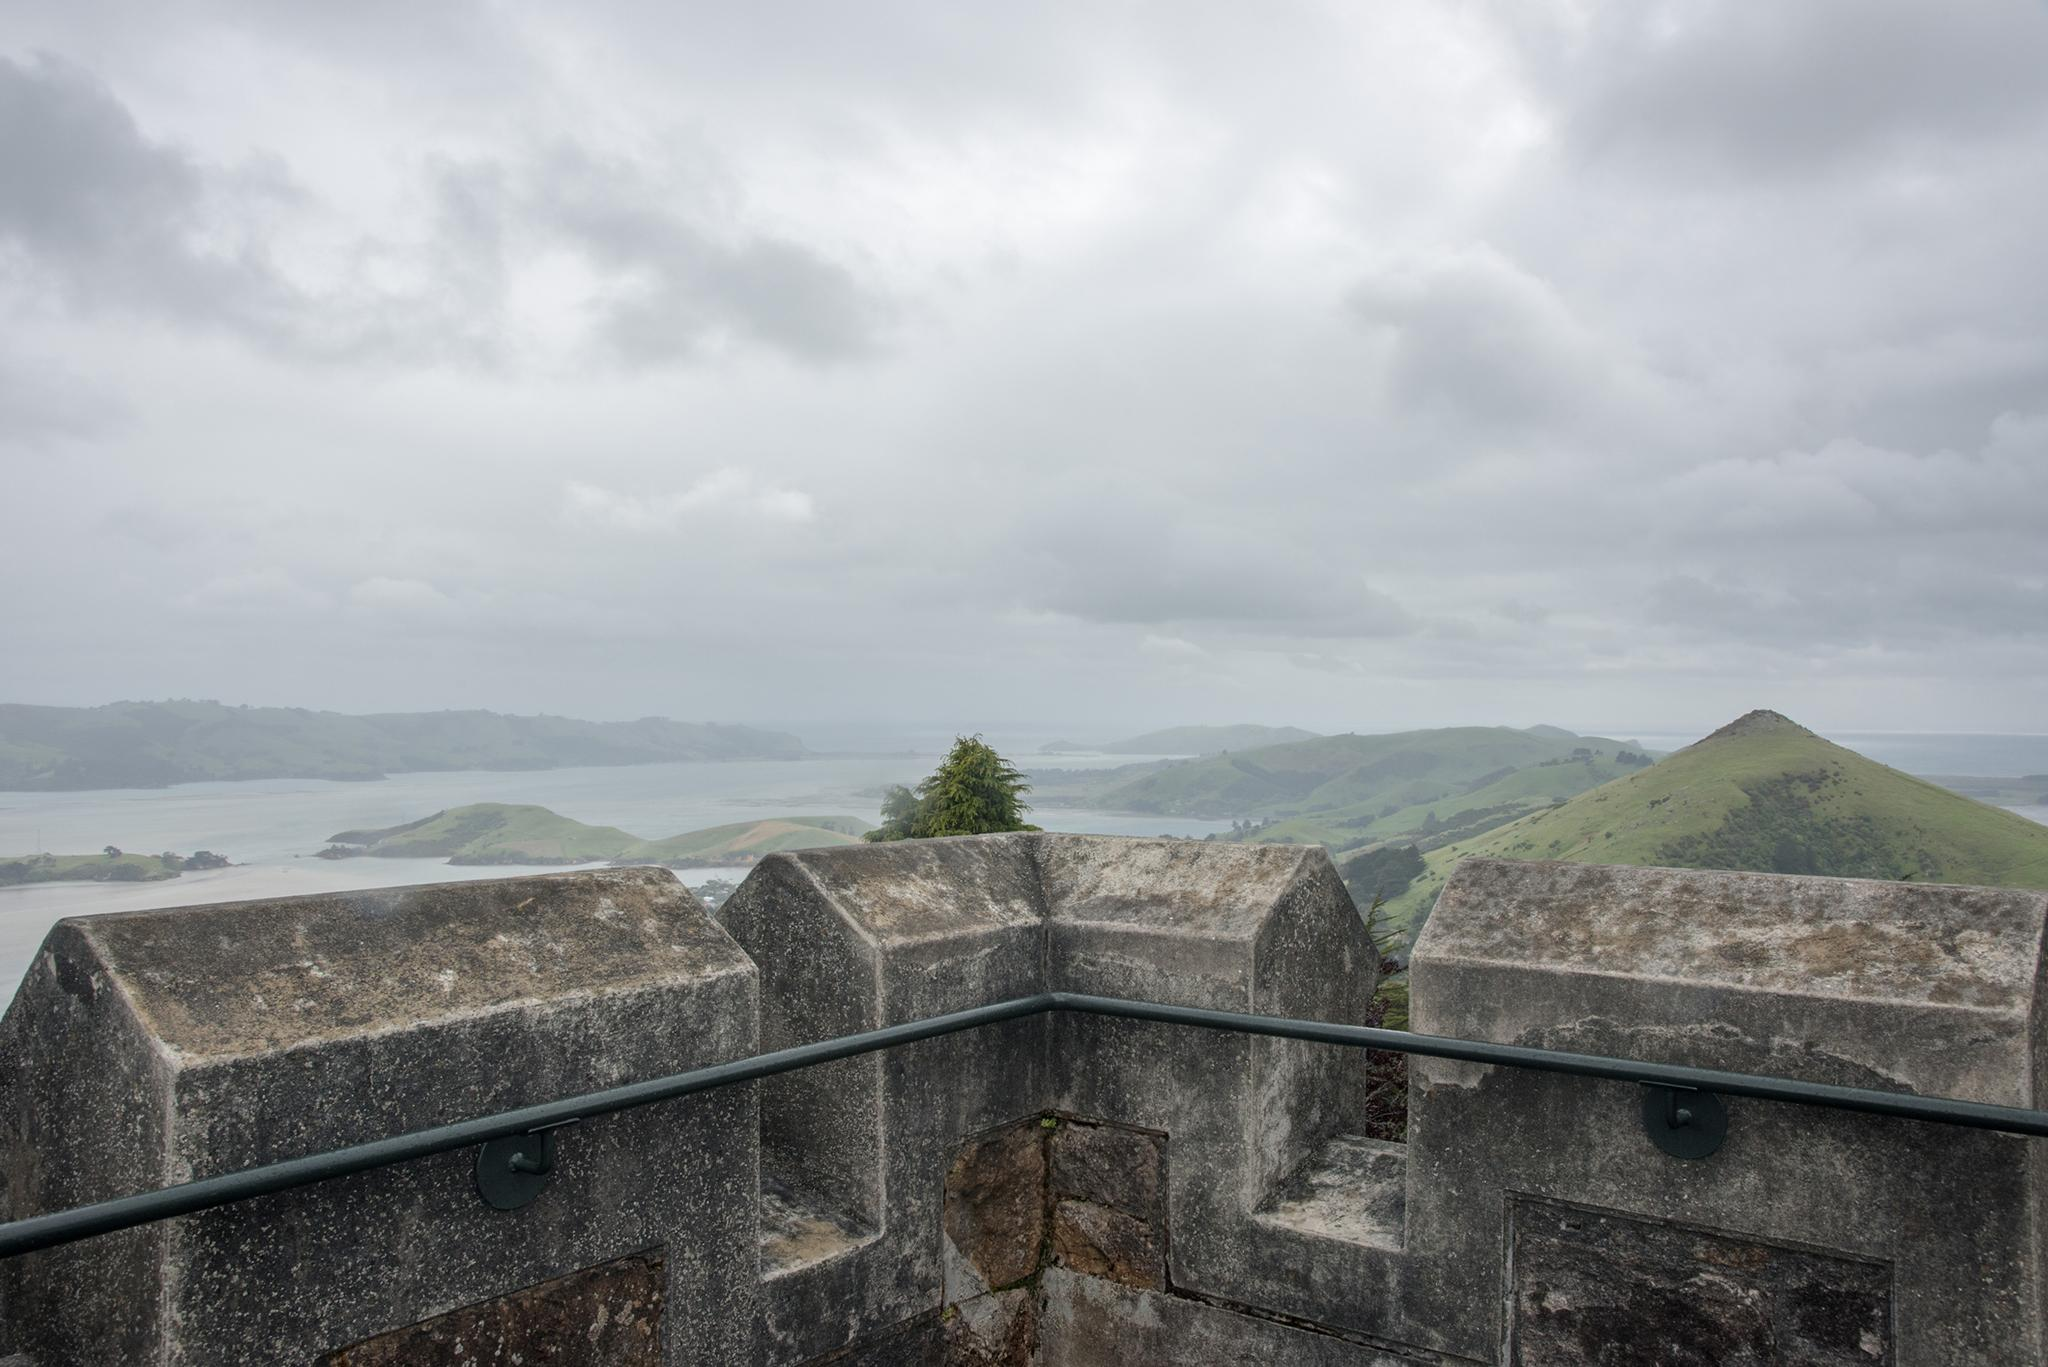 View from Larnach Castle over the Otago Peninsula